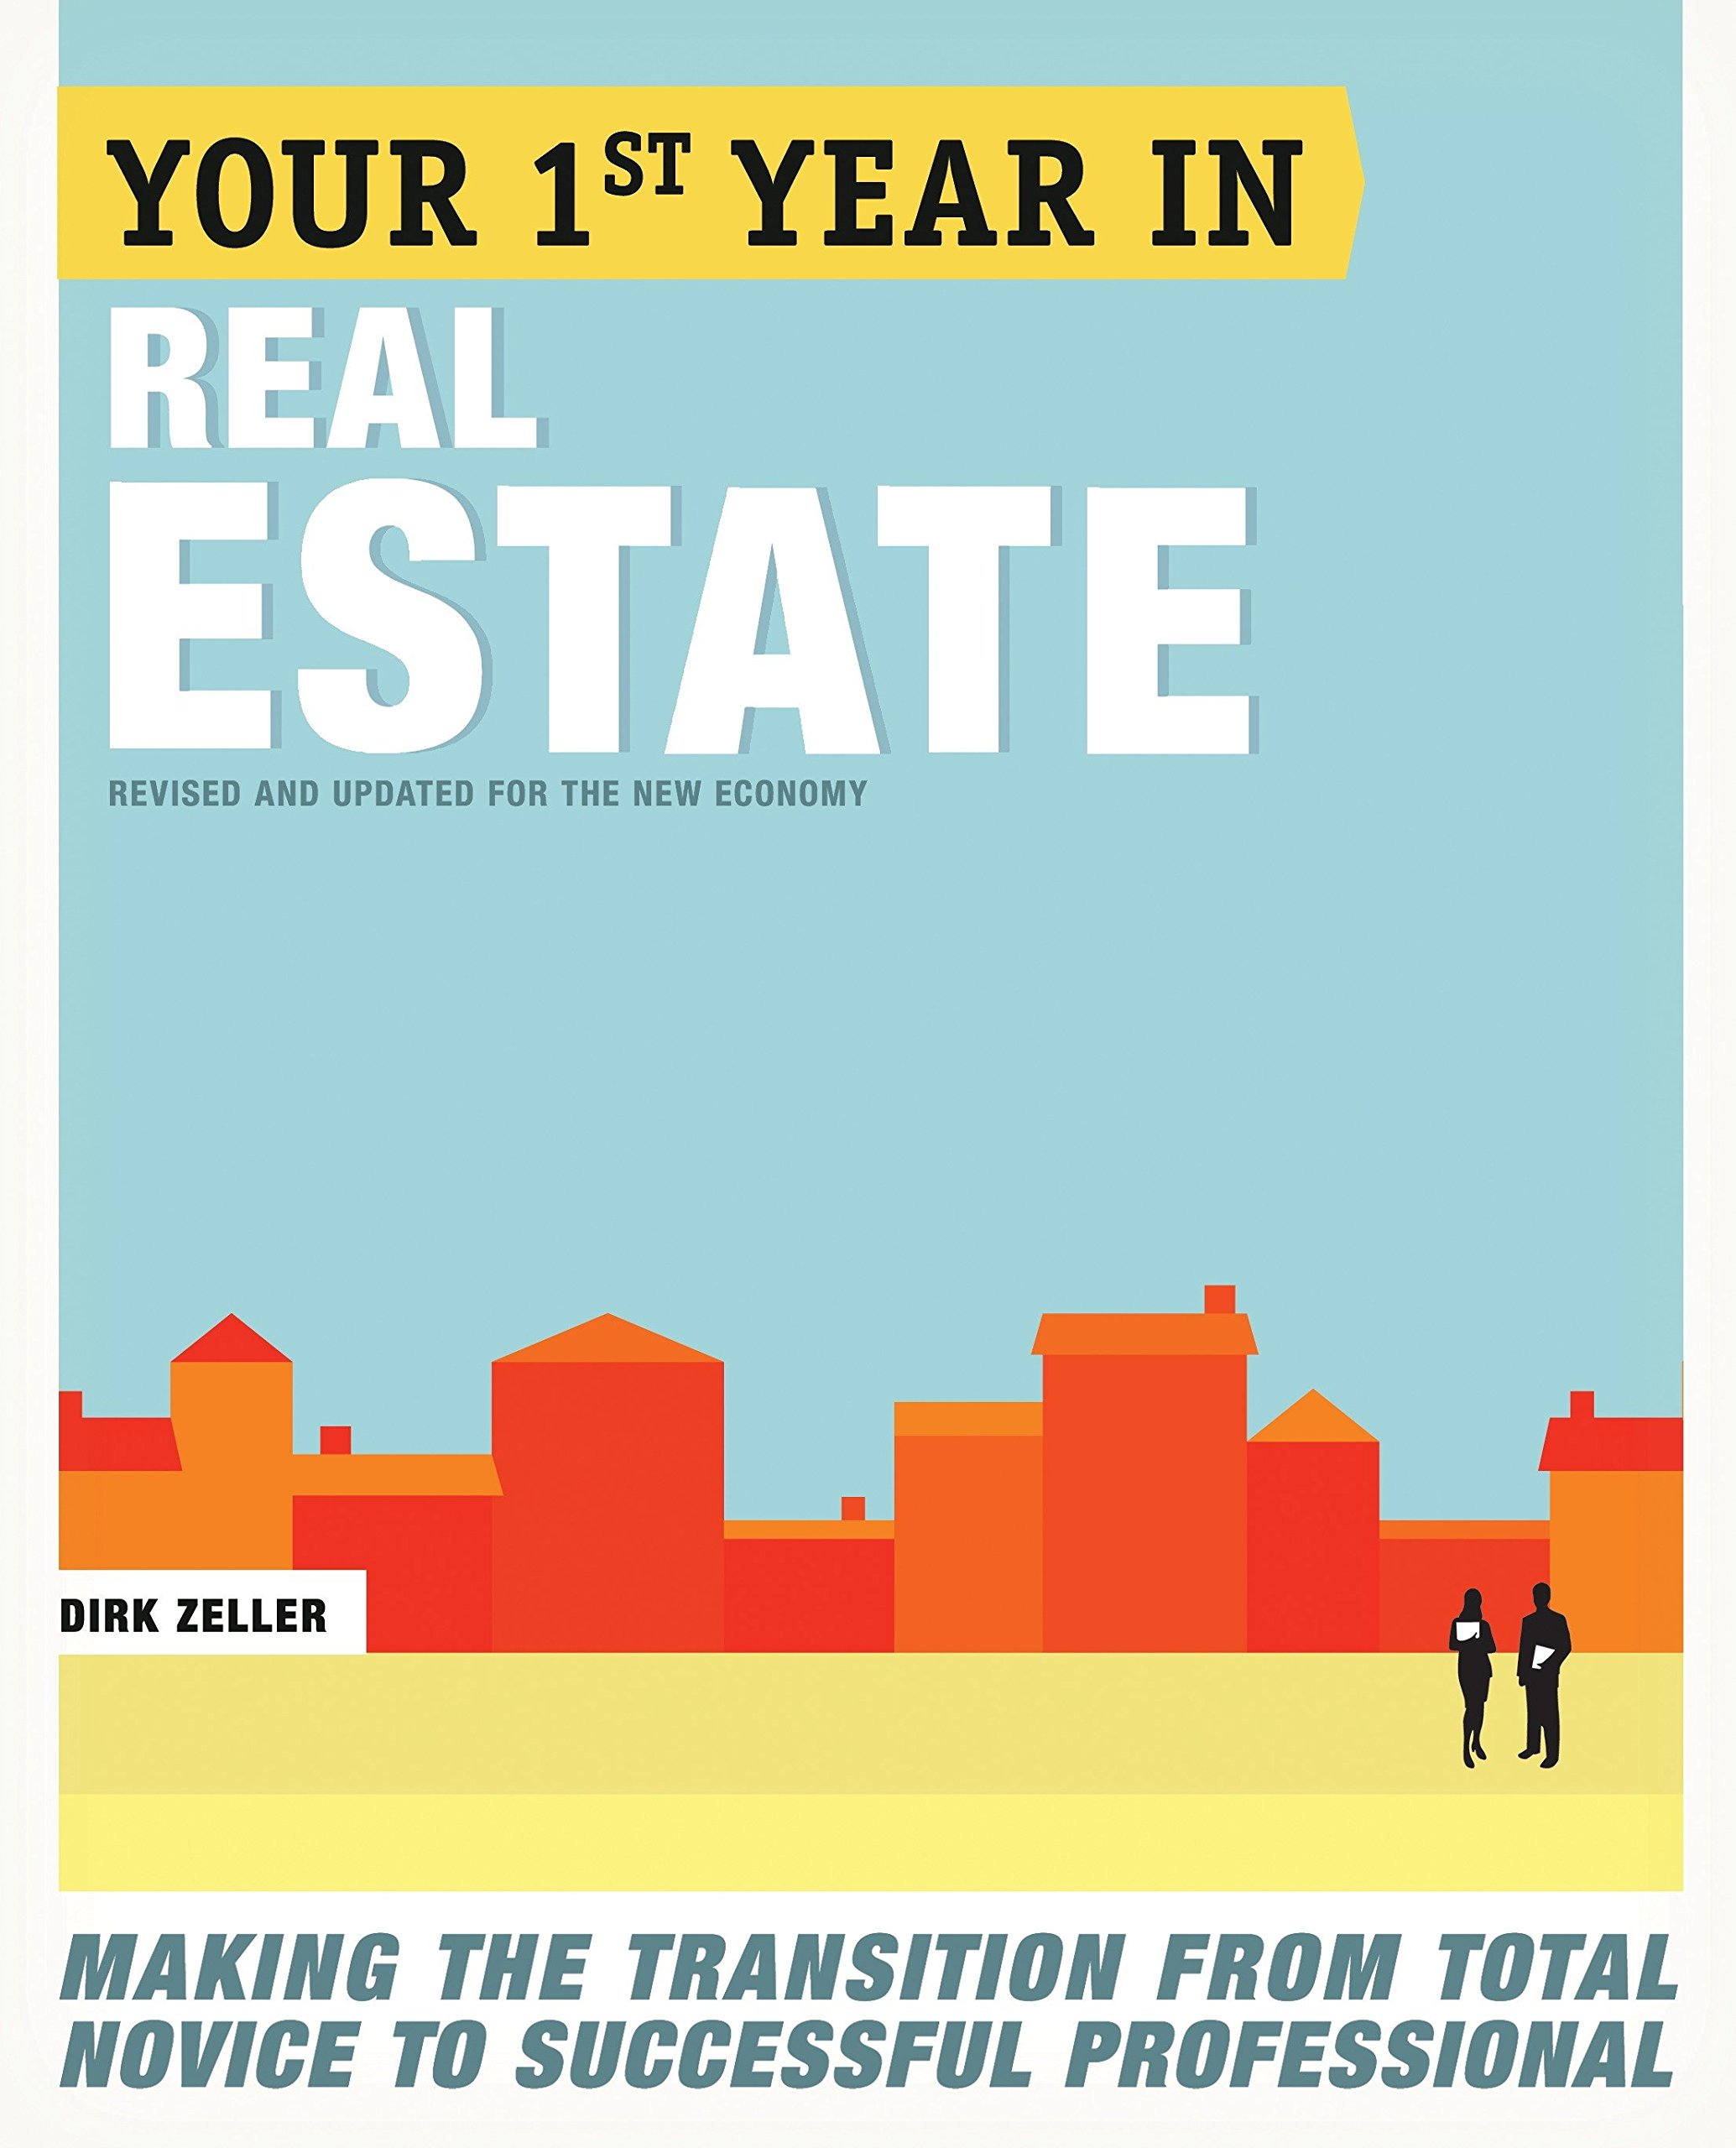 Your First Year in Real Estate, 2nd Ed.: Making the Transition from Total Novice to Successful Professional by Currency